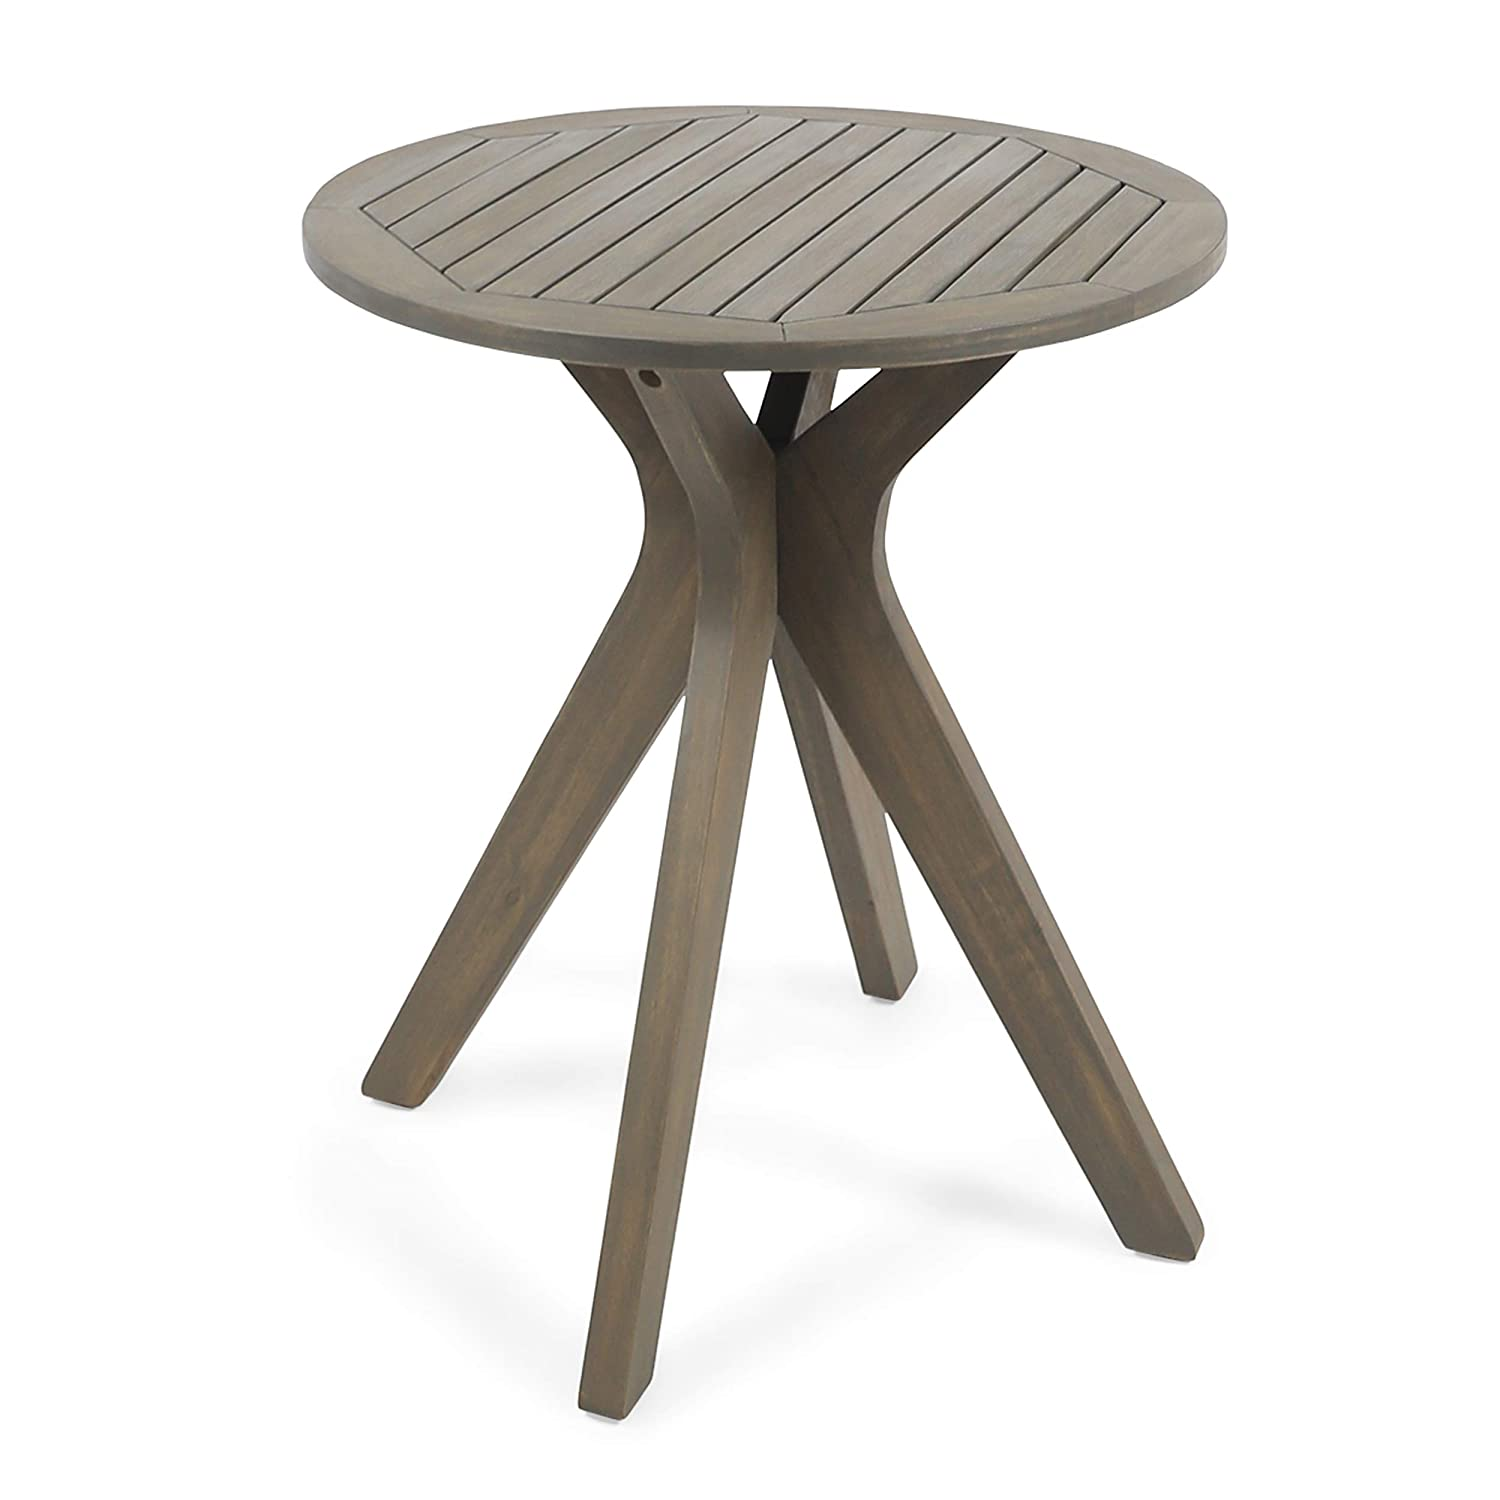 Christopher Knight Home 304871 Brigitte Outdoor Round Acacia Wood Bistro Table with X Legs, Grey: Industrial & Scientific